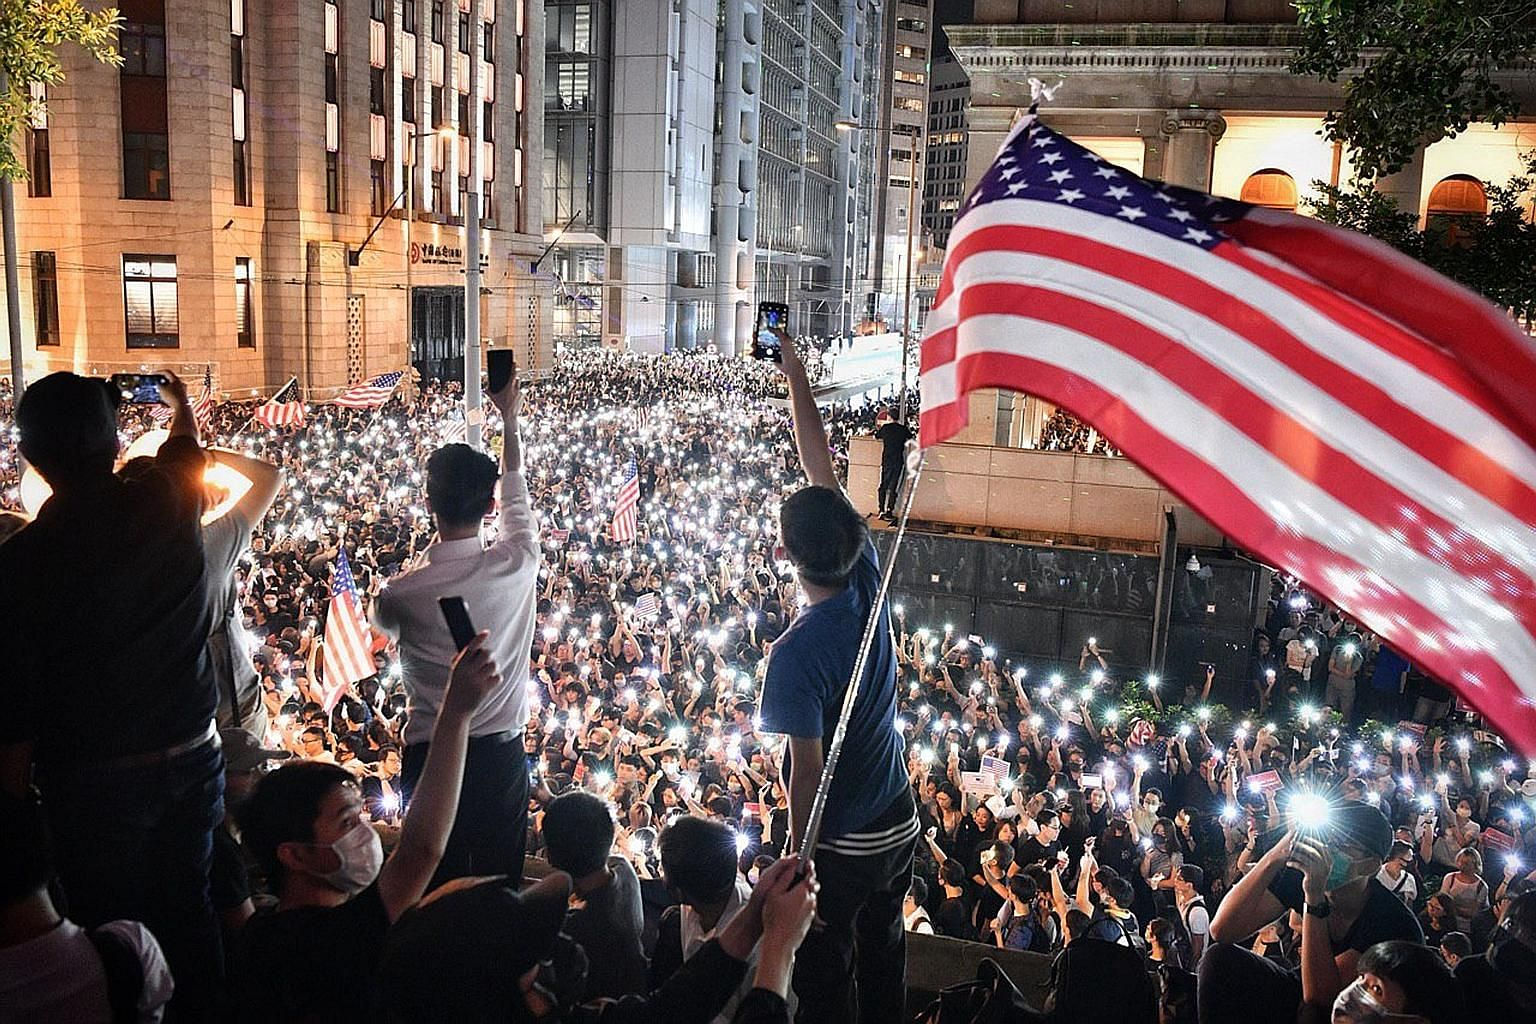 Protesters in Hong Kong flying the American flag near government headquarters last week. The territory's neoliberal tendencies and hands-off developmental approach has seen the world pass it by while persistent social problems remain unaddressed, say